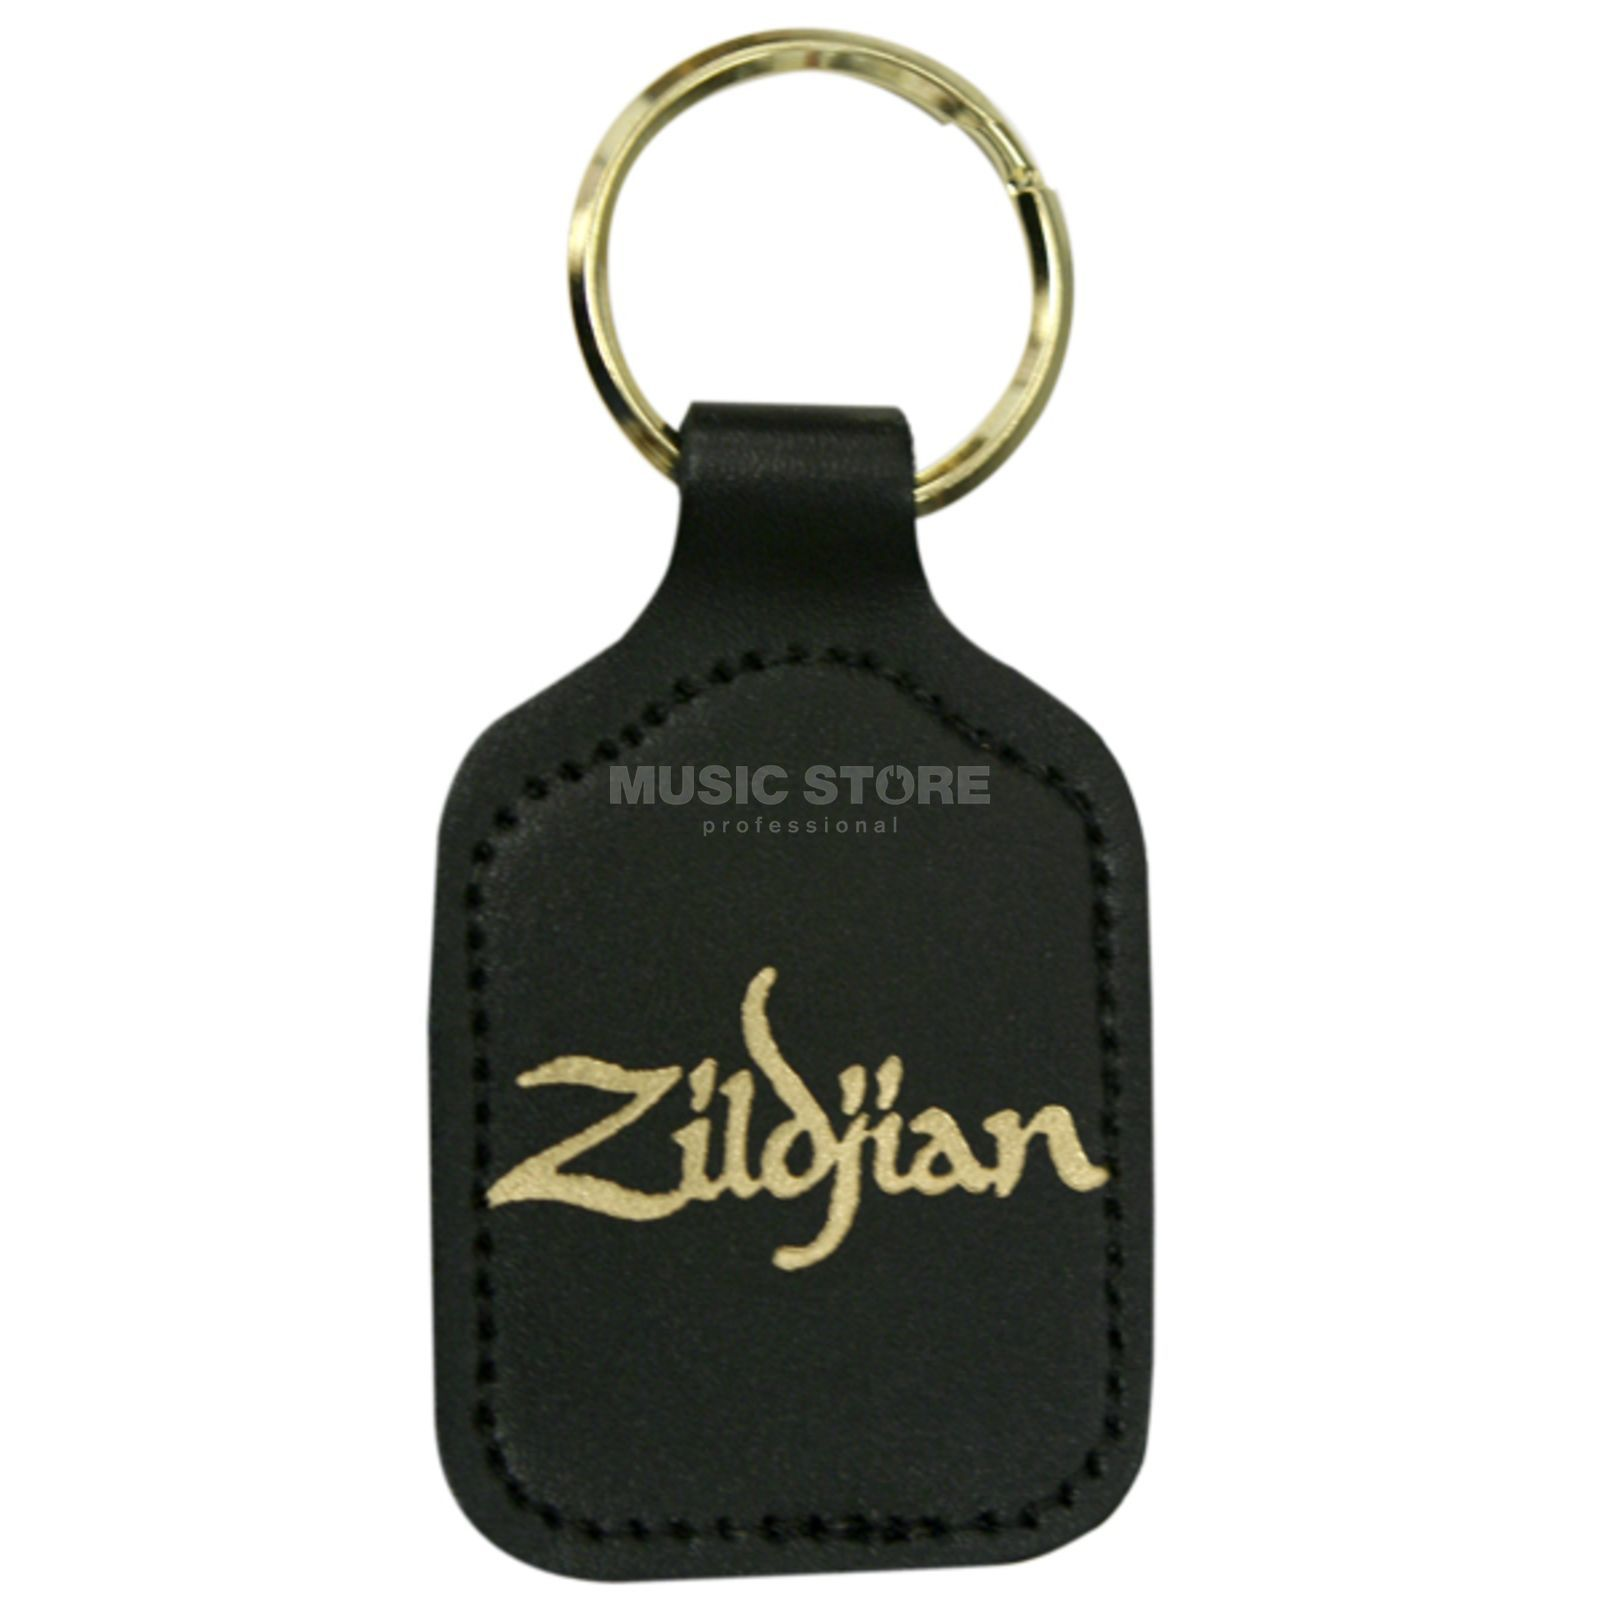 Zildjian Leather Key Ring  Product Image